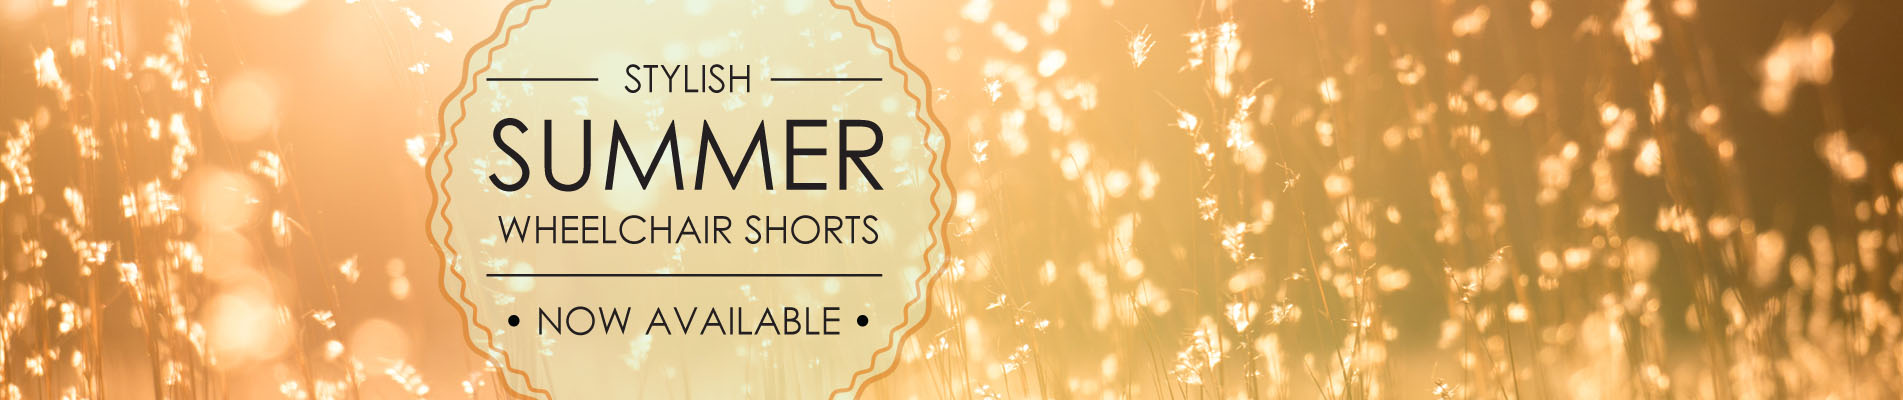 Stylish Summer Wheelchair Shorts